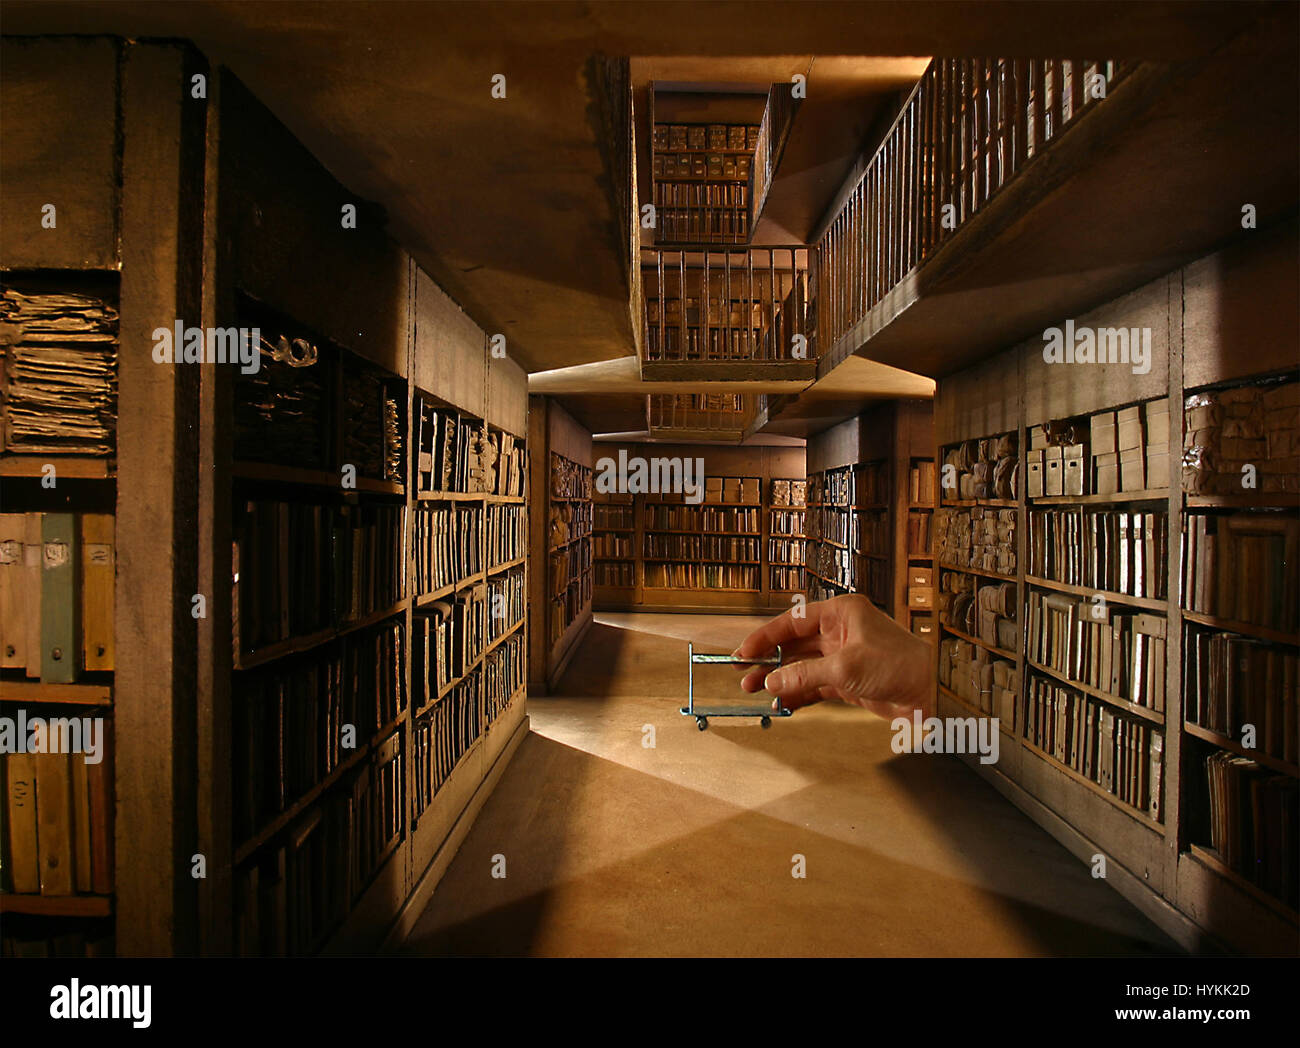 LYON, FRANCE: One to twelve scale replica of 'Les Archives' by Dan Ohlmann. STEP INTO the miniature world of this Stock Photo